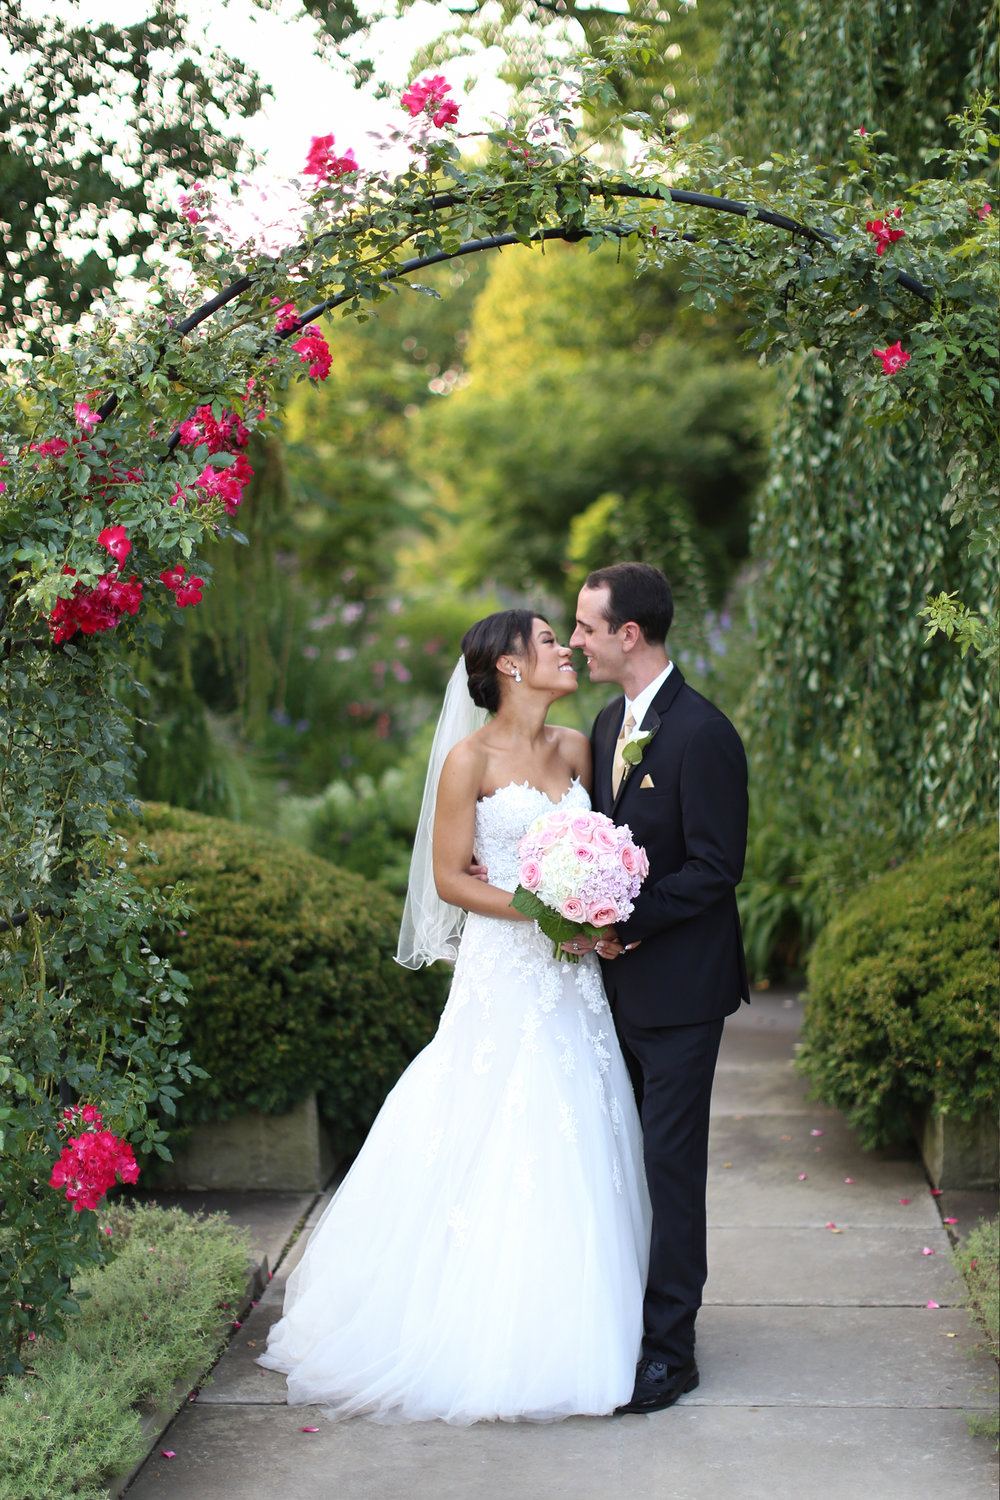 Marissa Camino Photography - Kind Words Noelle & Nick